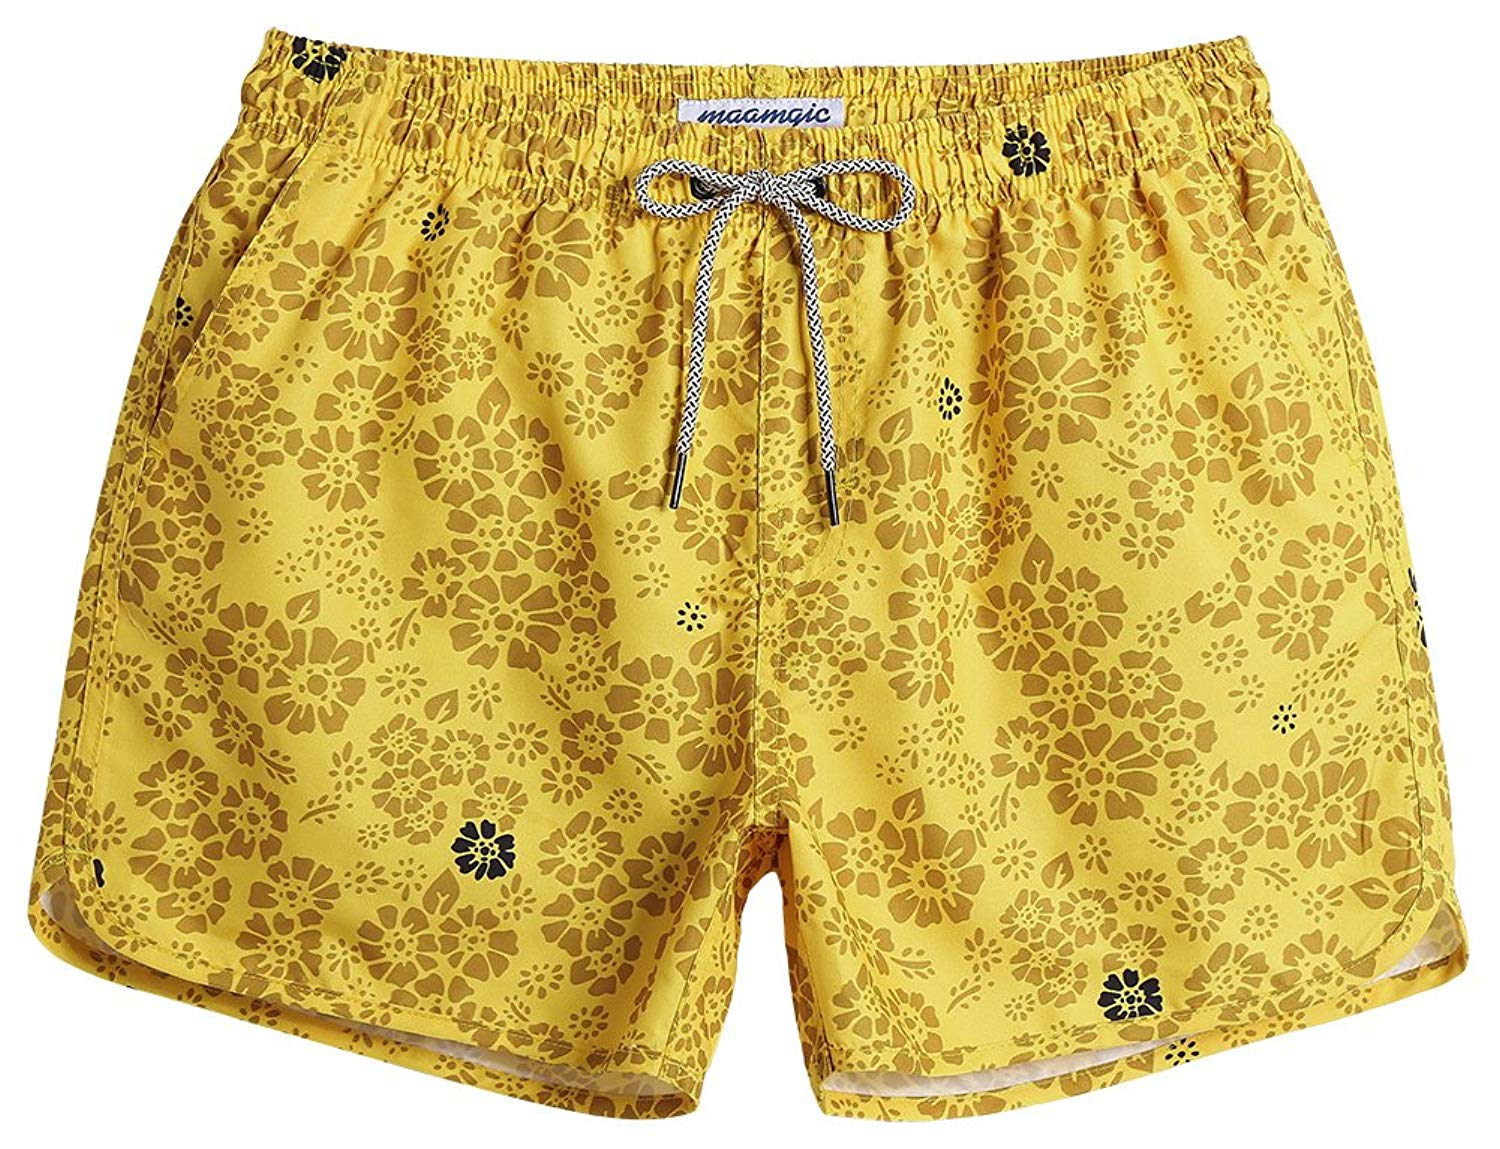 949df52437667 Get Quotations · MaaMgic Mens Short 80s Original Swim Trunks with Mesh  Lining Quick Dry Floral Vintage Swim Trunks